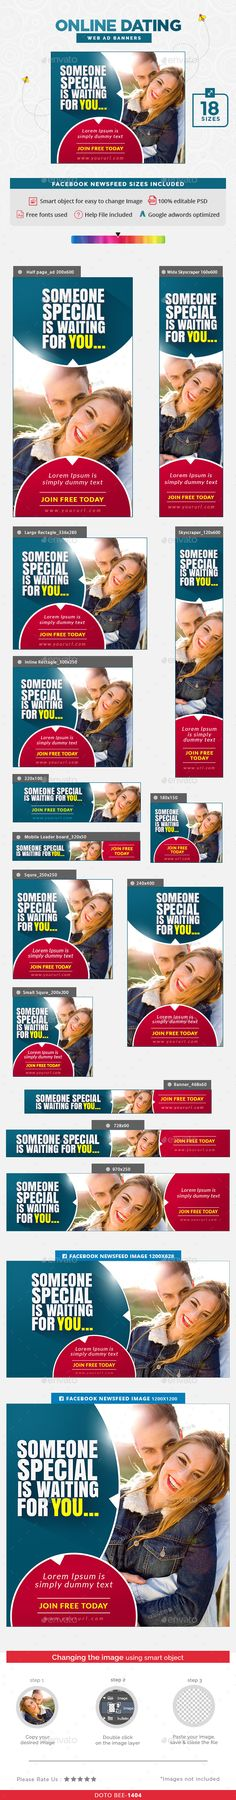 Online Dating Banners Template PSD #ads #promote Download here: http://graphicriver.net/item/online-dating-banners/16145592?ref=ksioks